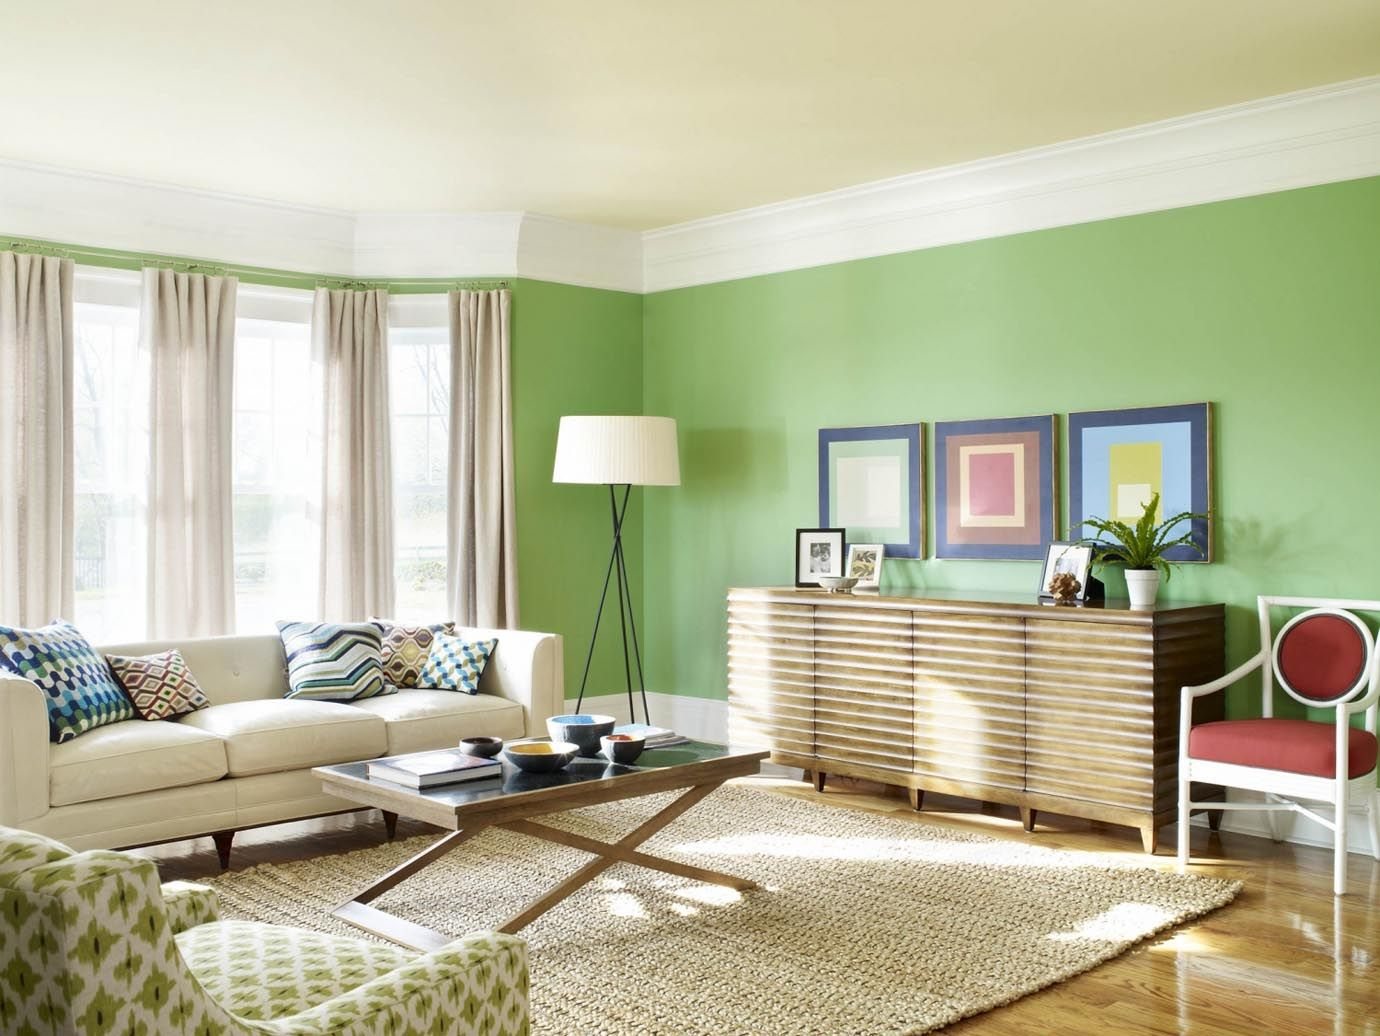 Best Green Paint Color For Living Room Room Paint Designs Paint